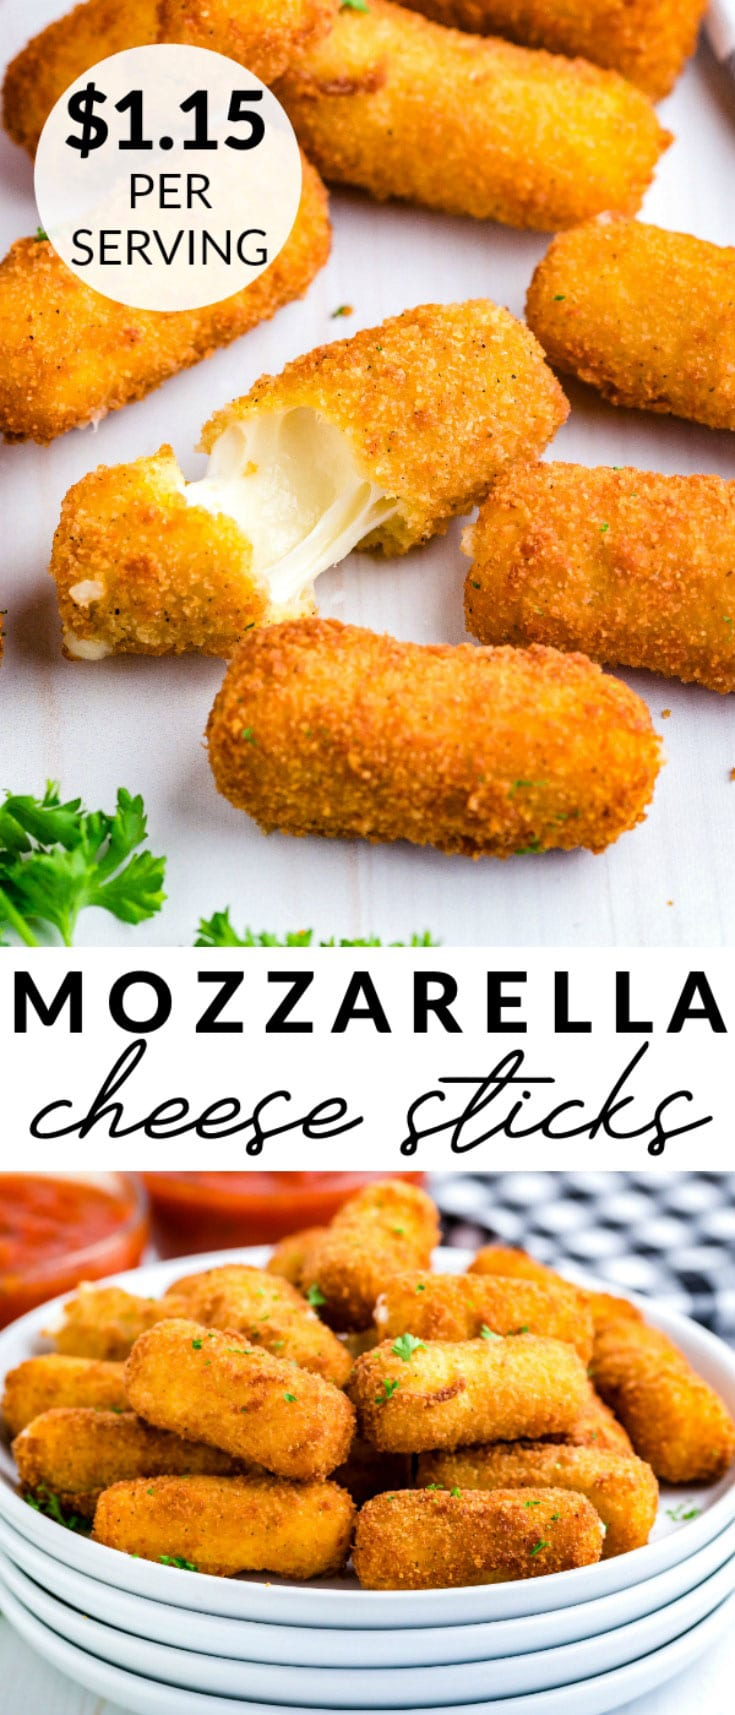 These homemade Mozzarella Cheese Sticks are easy to make and feed a hungry crowd. This recipe serves 6-8 and costs $9.19 to make. That's just $1.15 per serving. via @easybudgetrecipes